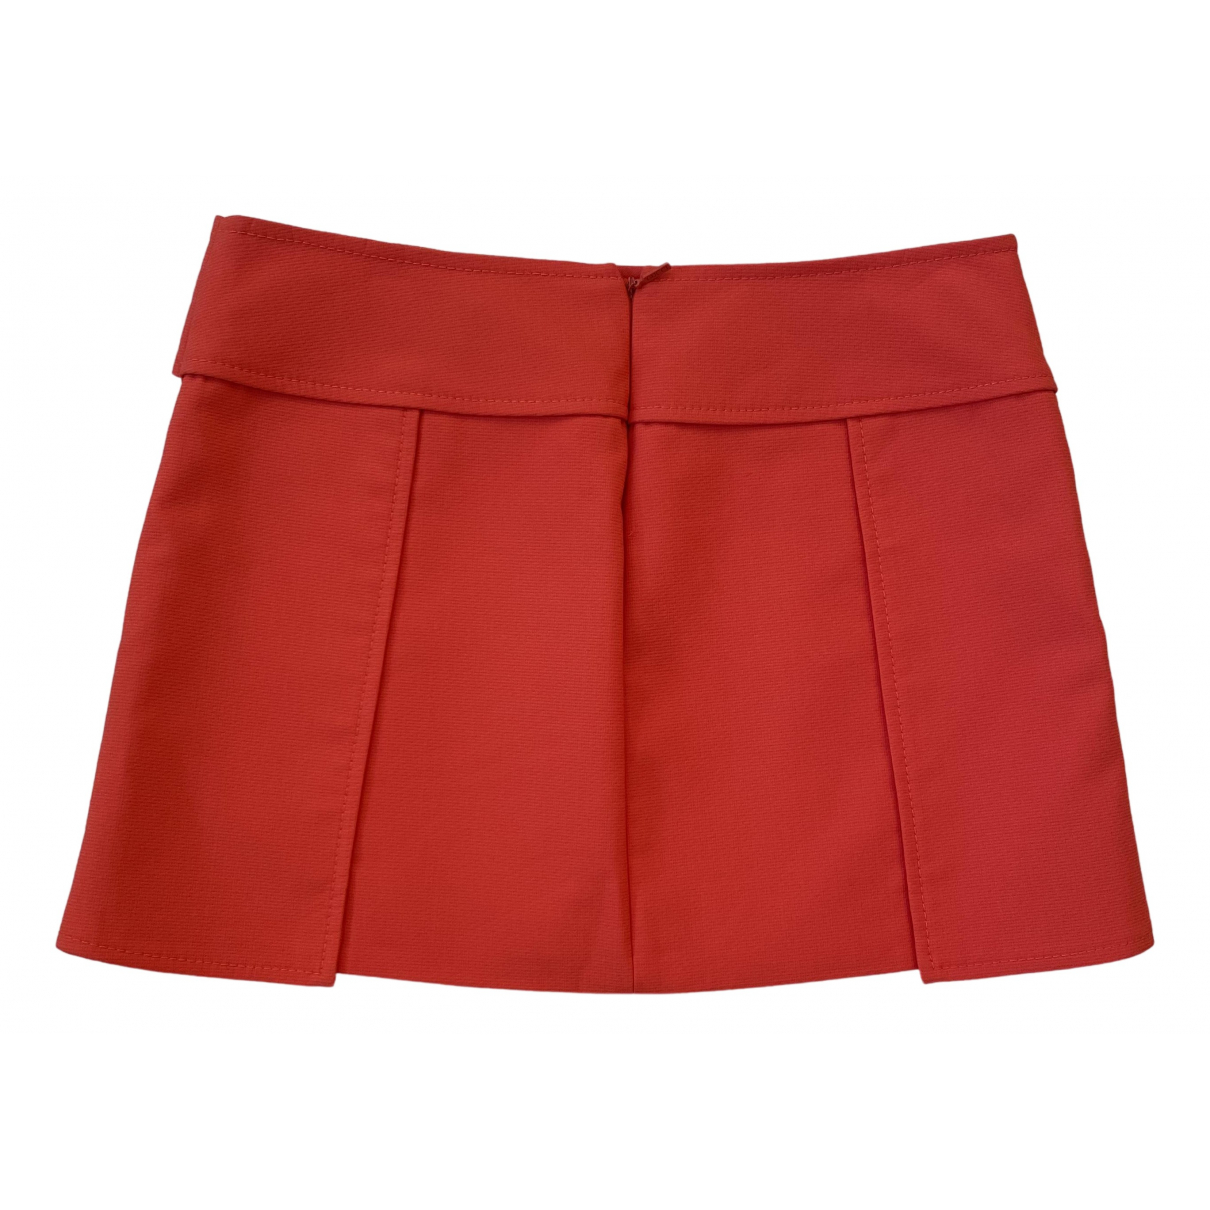 Gucci \N Red Cotton skirt for Women 40 IT